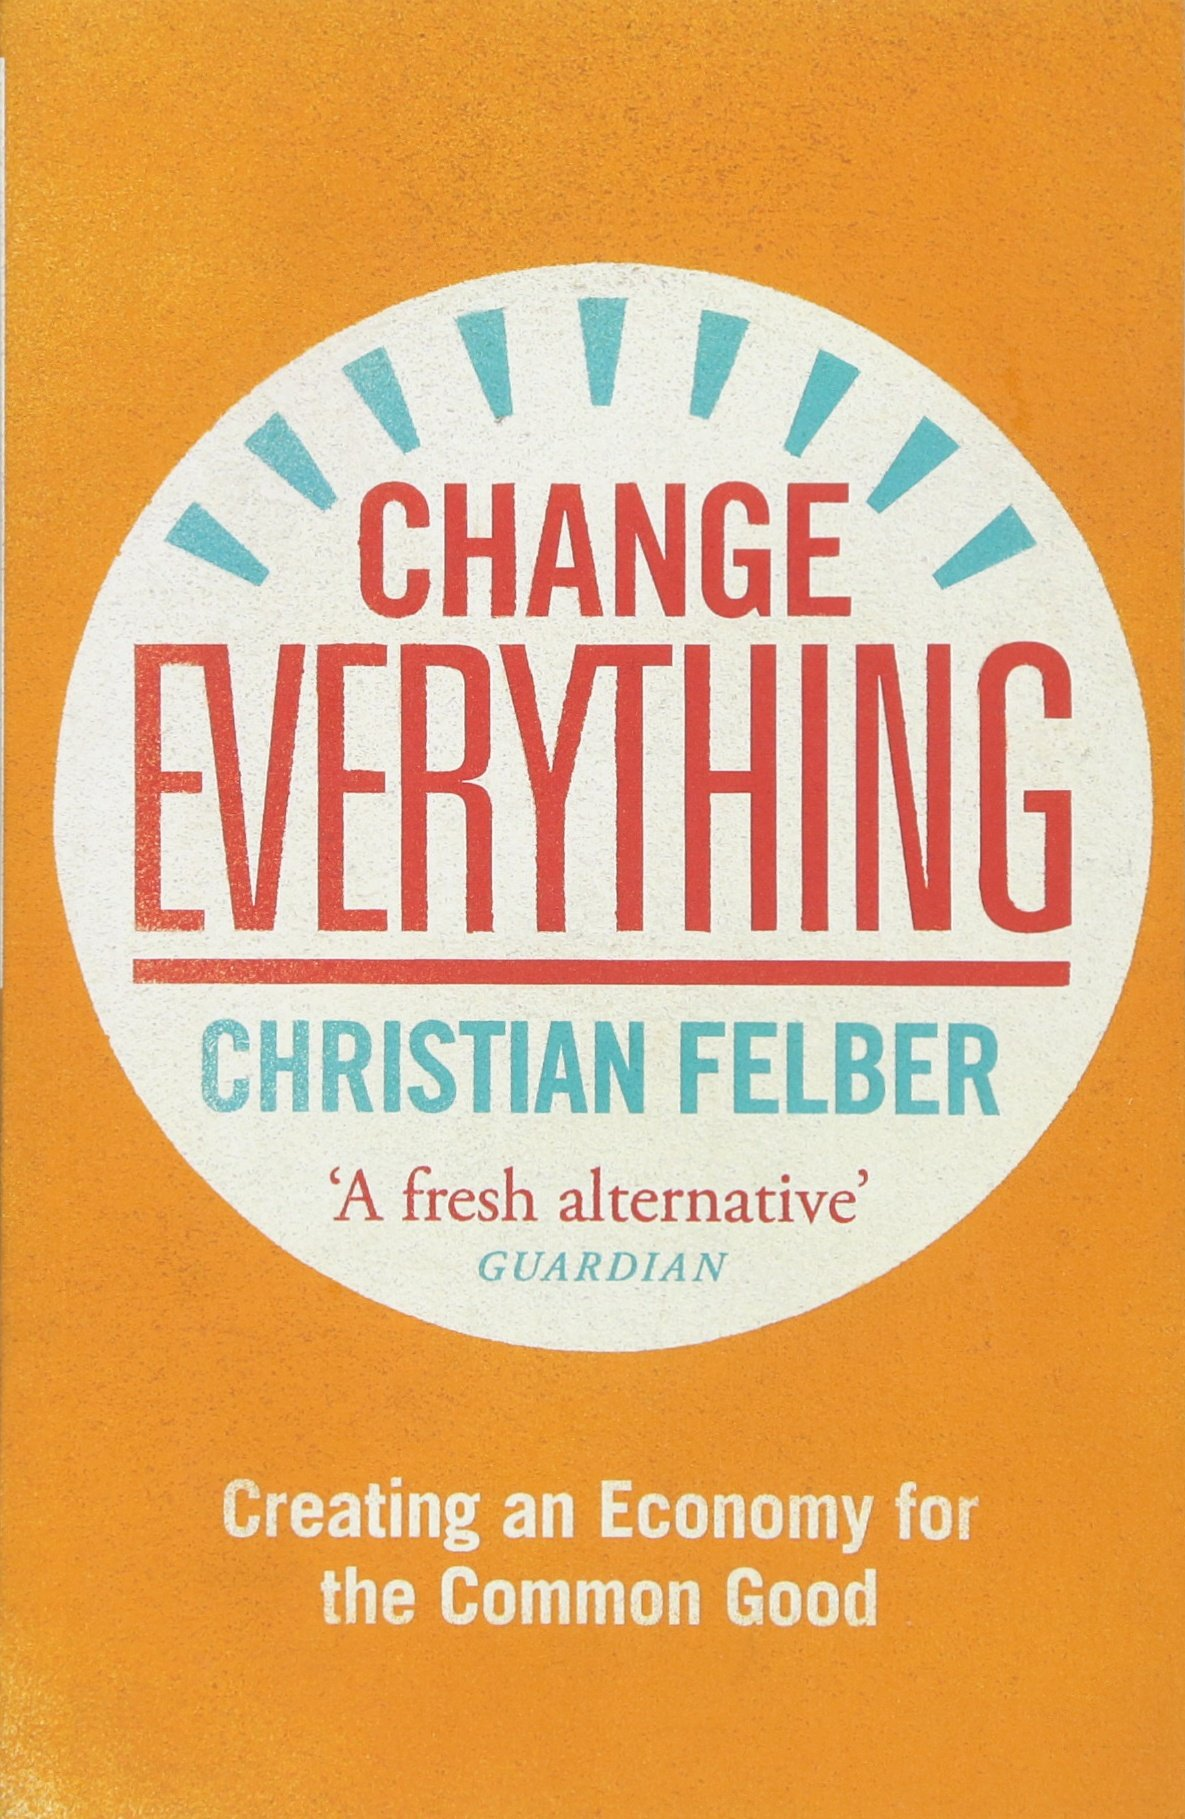 Economy for the Common Good - Christian Felber - From the legal foundations of our economic system to the performance indicators used by companies to measure how they are doing, Christian Felber provides a series of fresh re-design ideas. The ideas he offers are at the same time very practical and very far-reaching. Highly recommended!